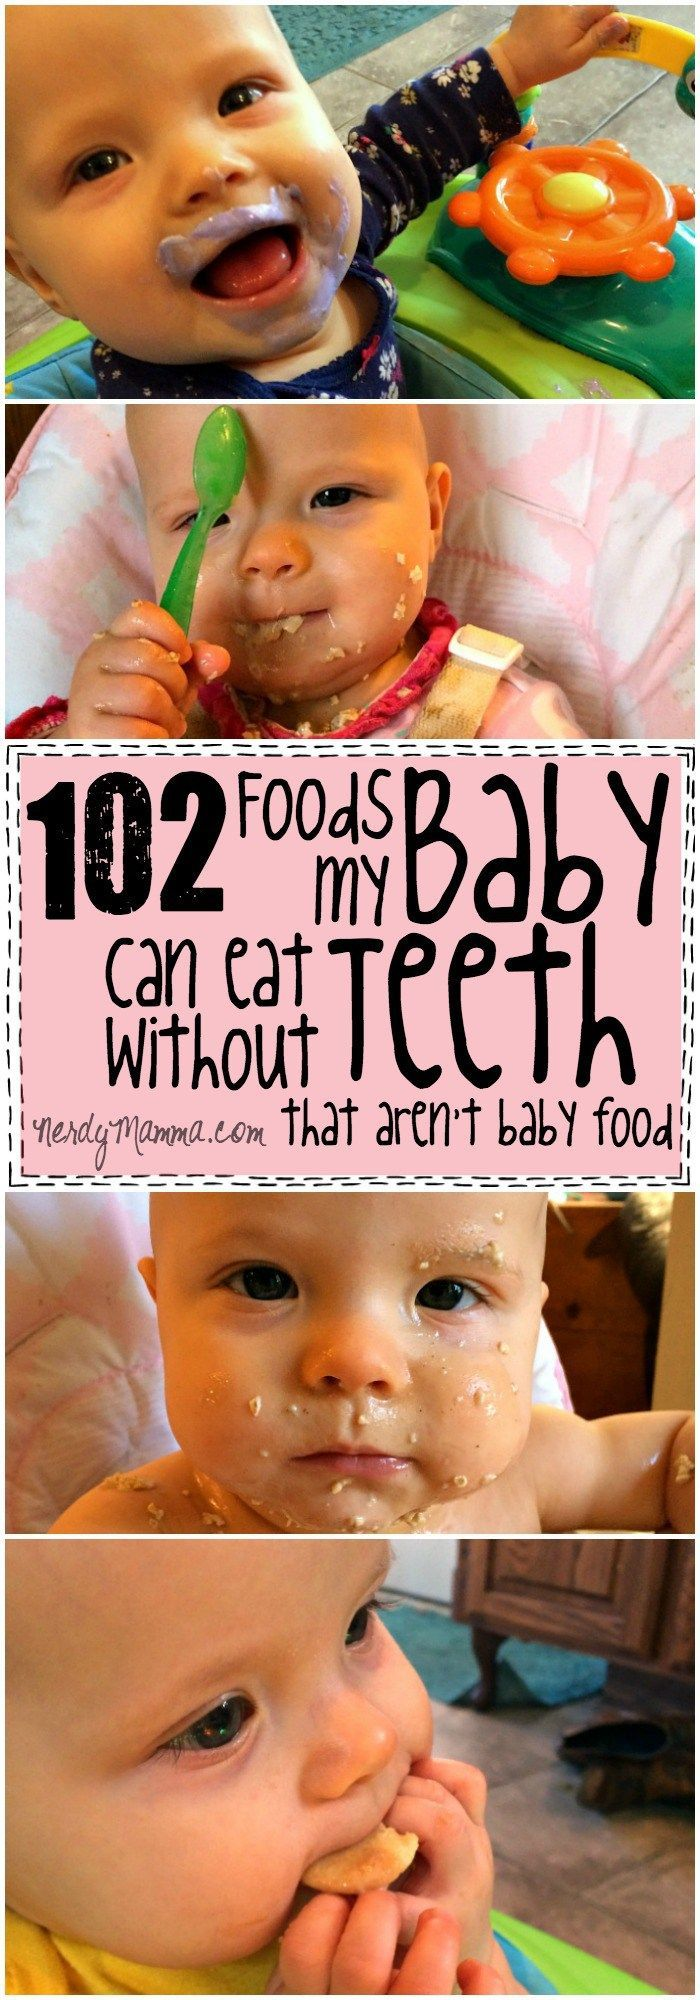 This List Of 102 Different Food Ideas For Babies Without Teeth Is Pretty Awesome